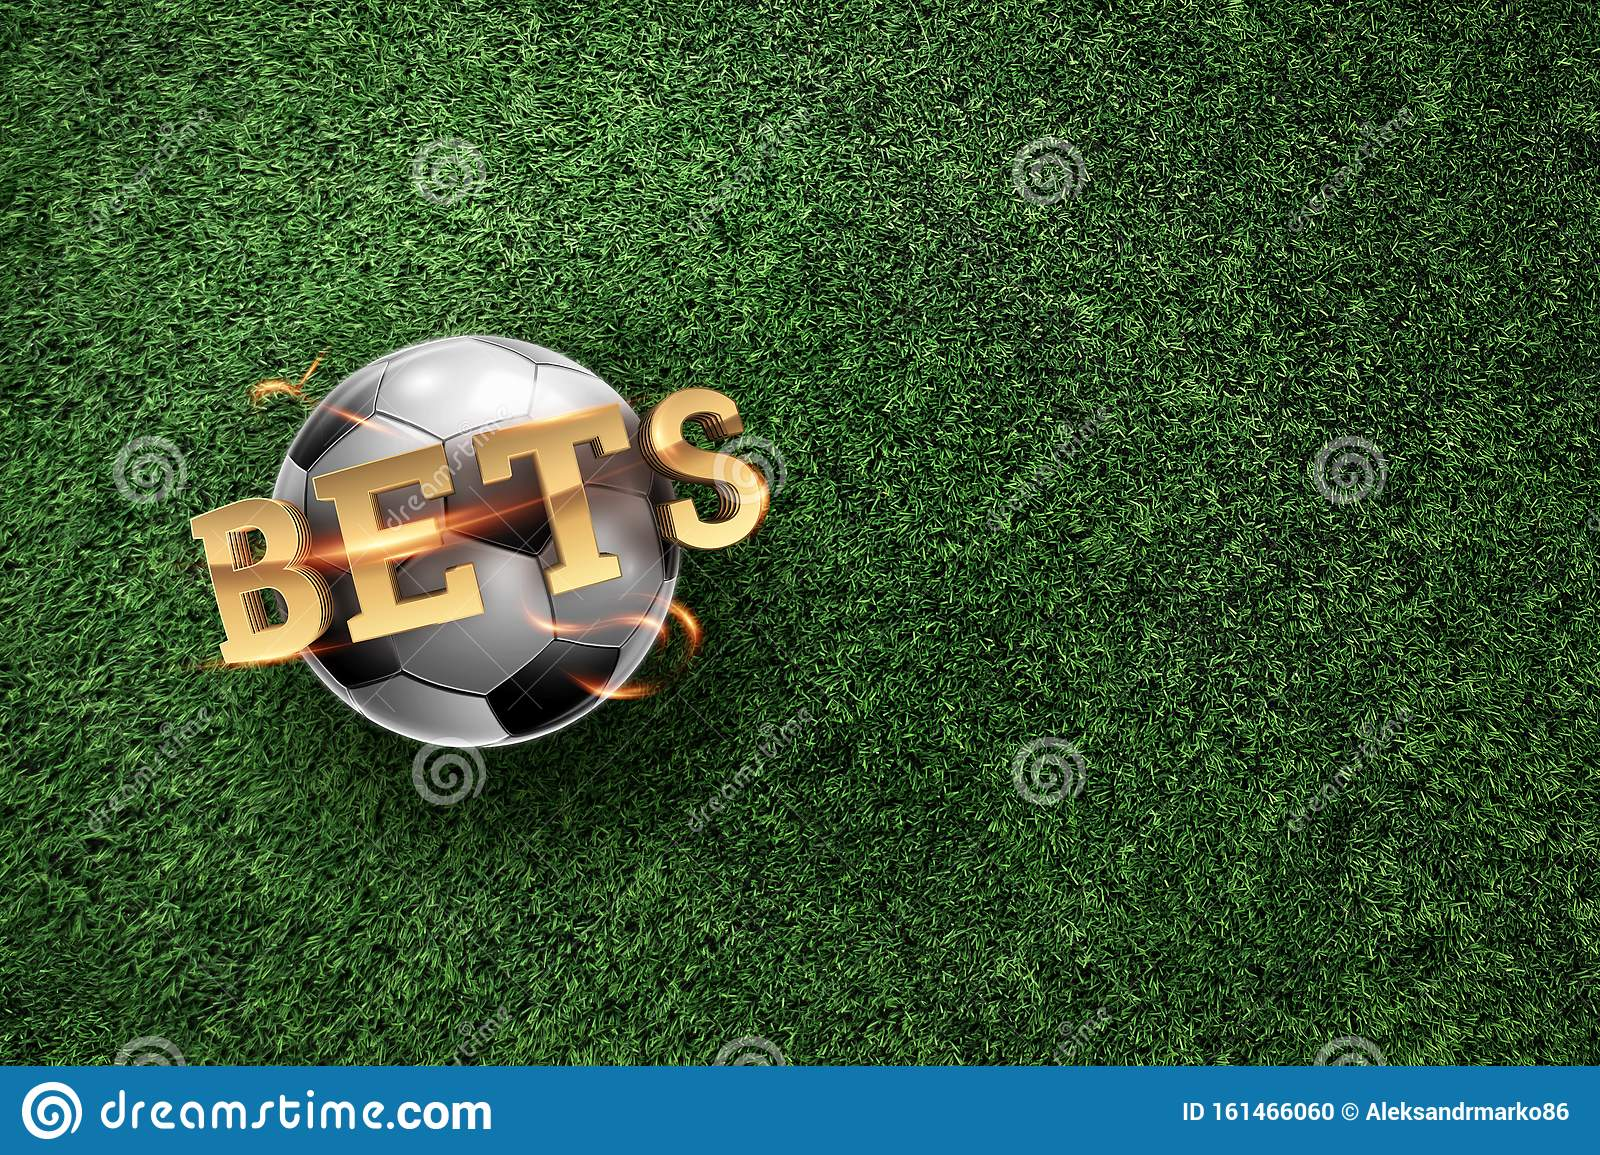 Betting lay vs background spread betting futures explained that